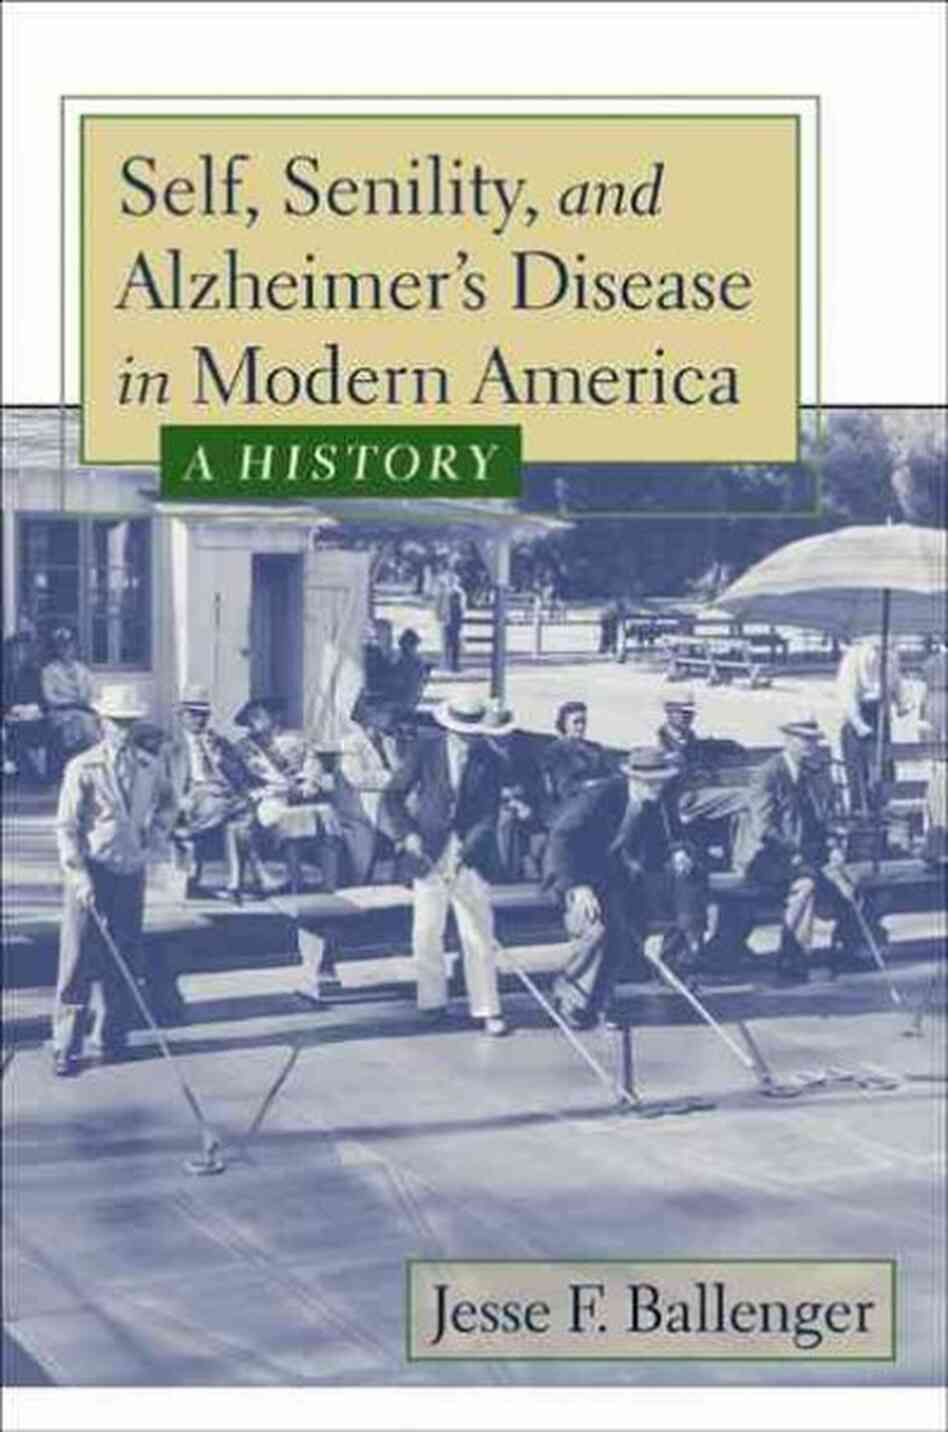 Self, Senility, And Alzheimer's Disease in Modern America